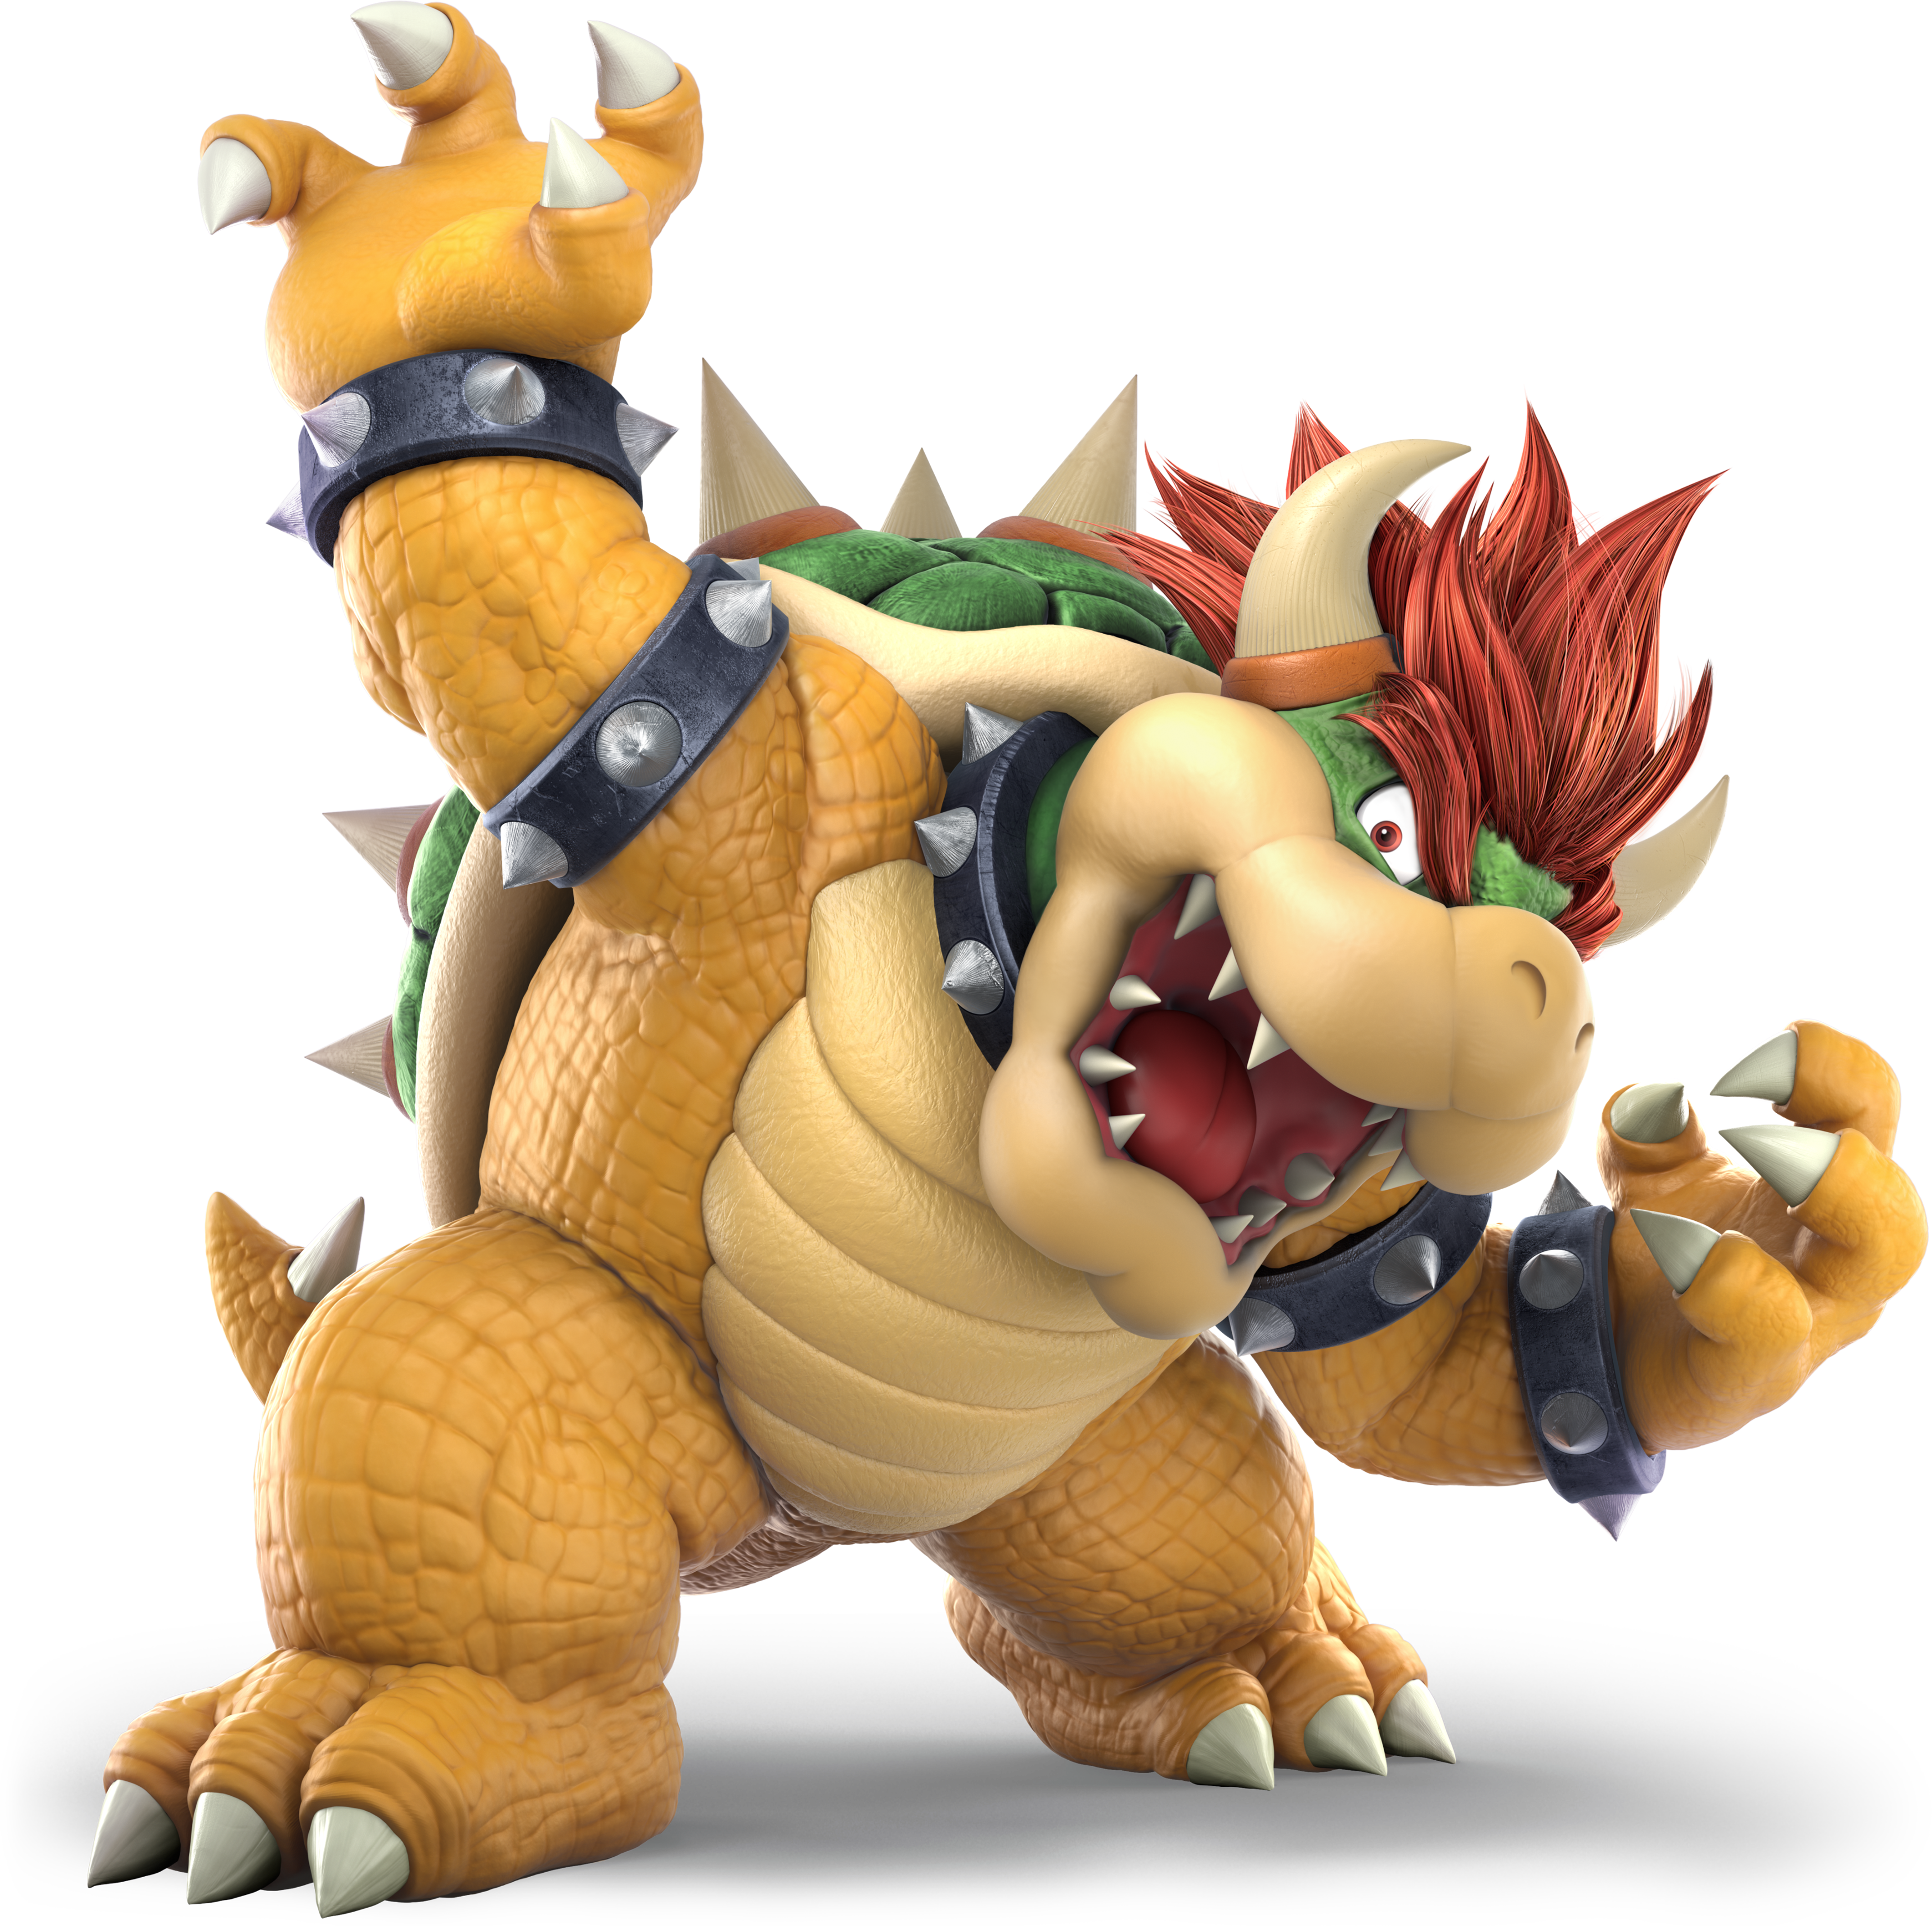 Bowser from Super Smash Bros. Ultimate